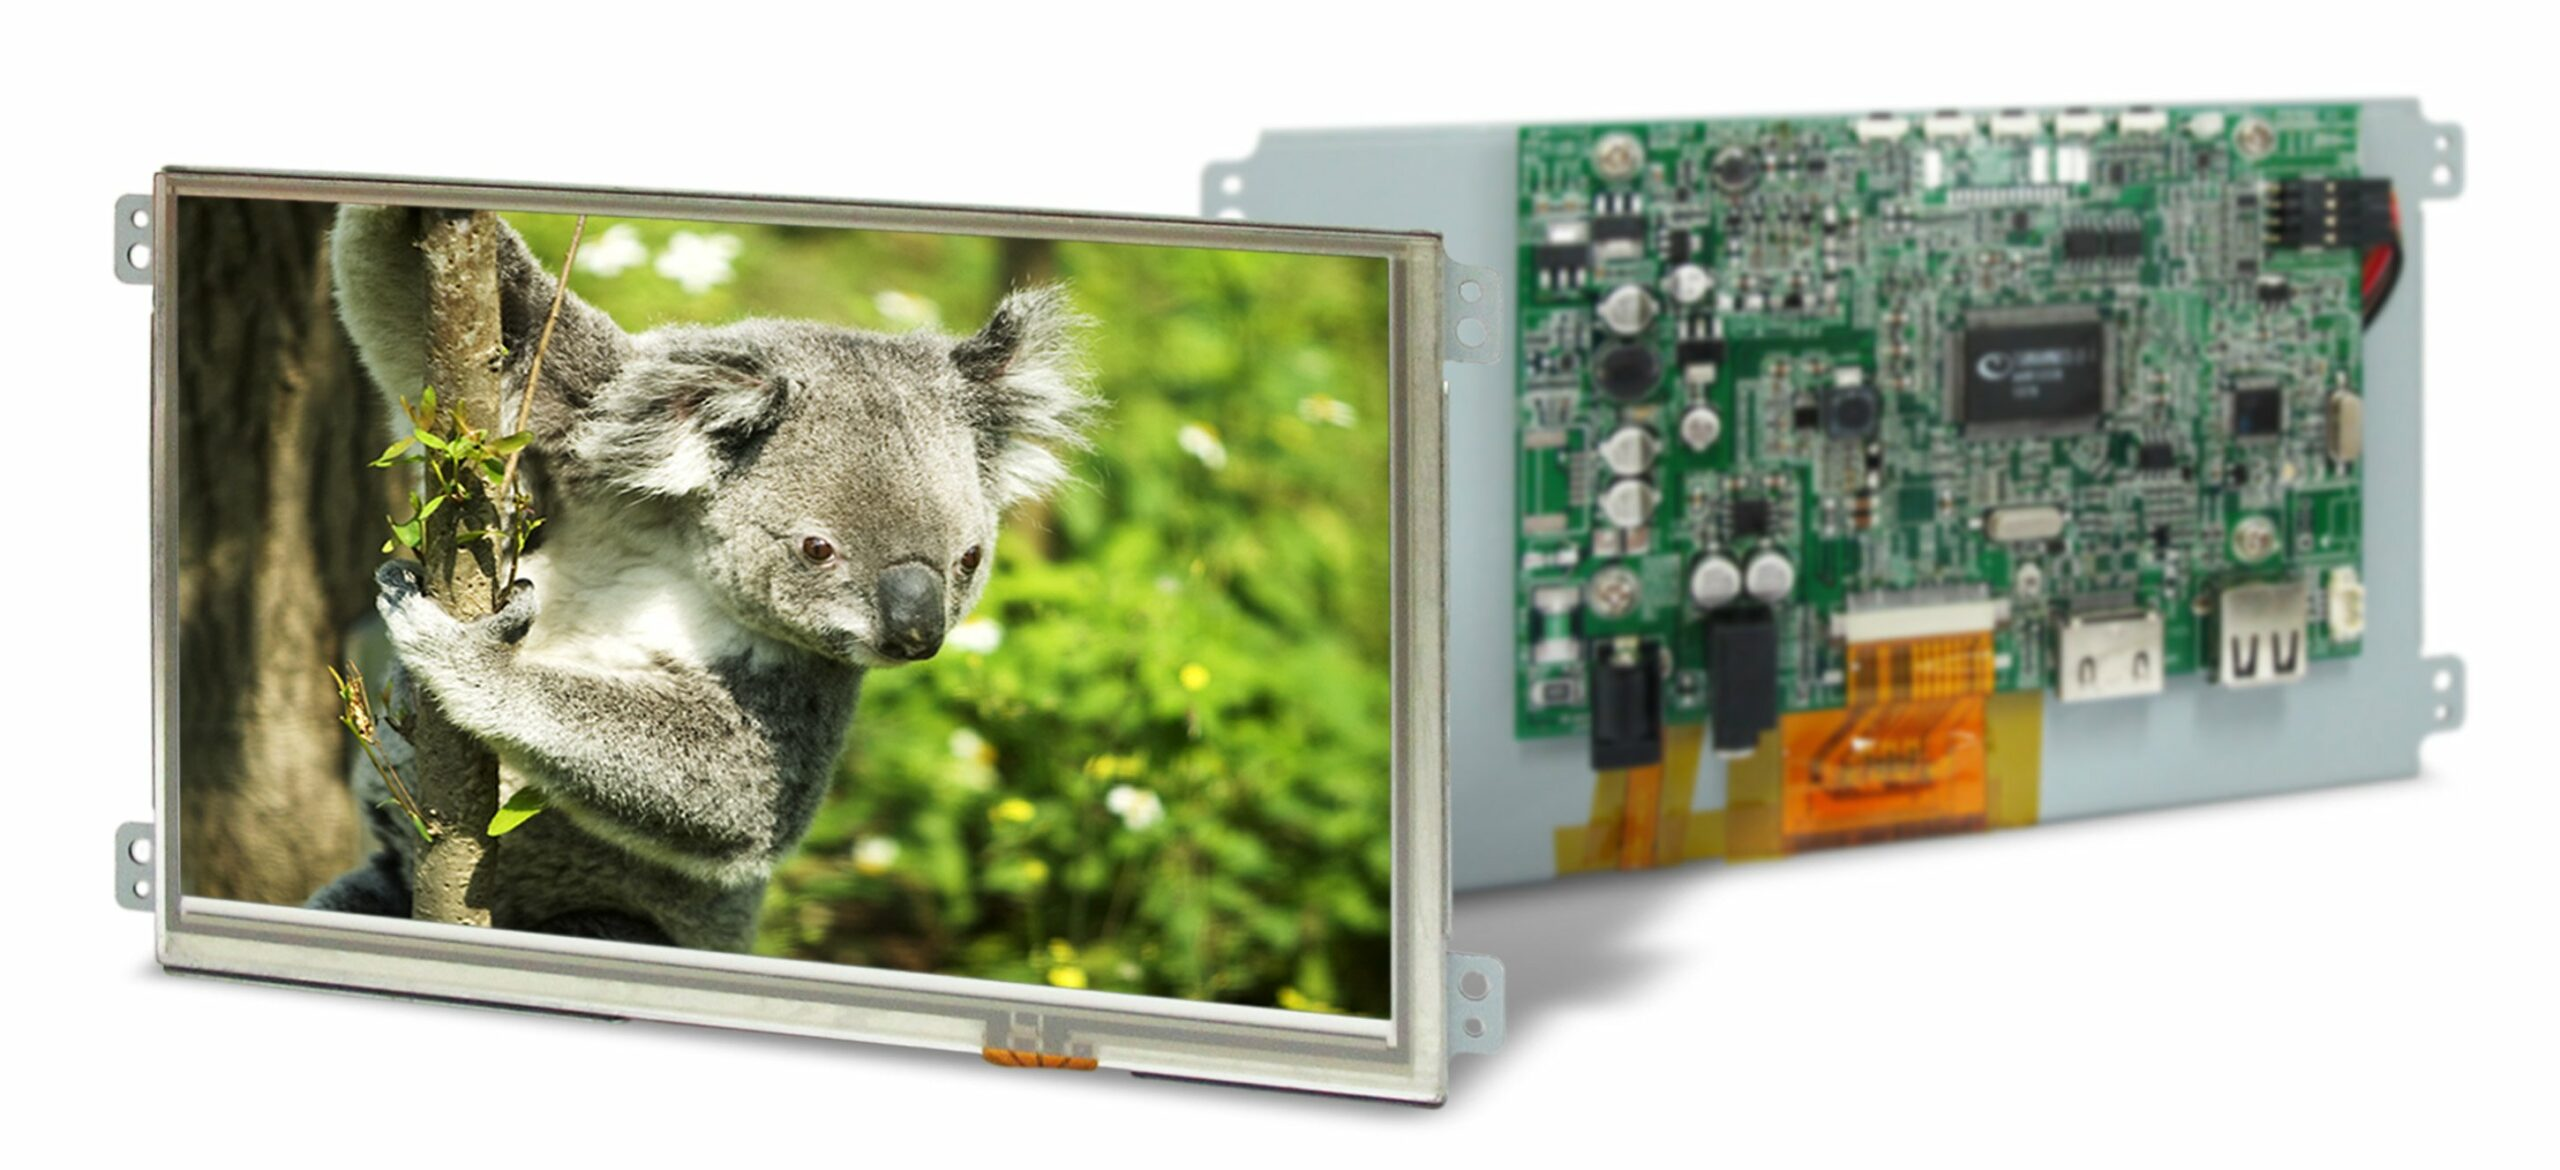 ILP104X0114-FNR 10.4″ Display